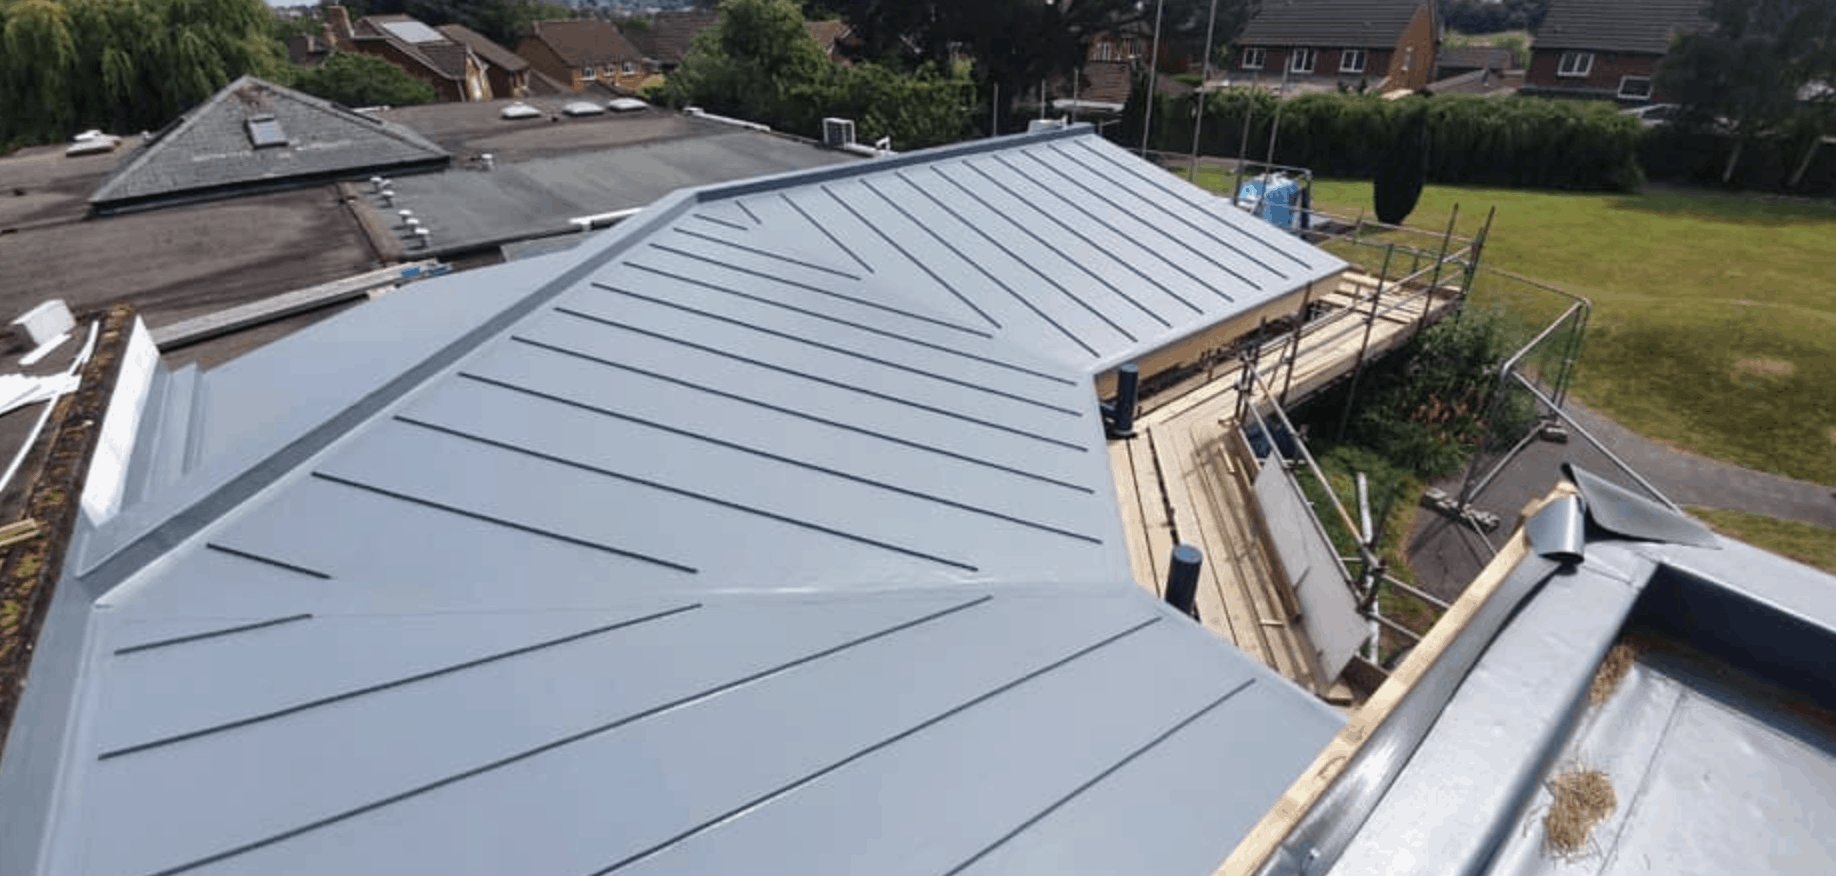 Flat Roofing System - SPS Roofing Ltd